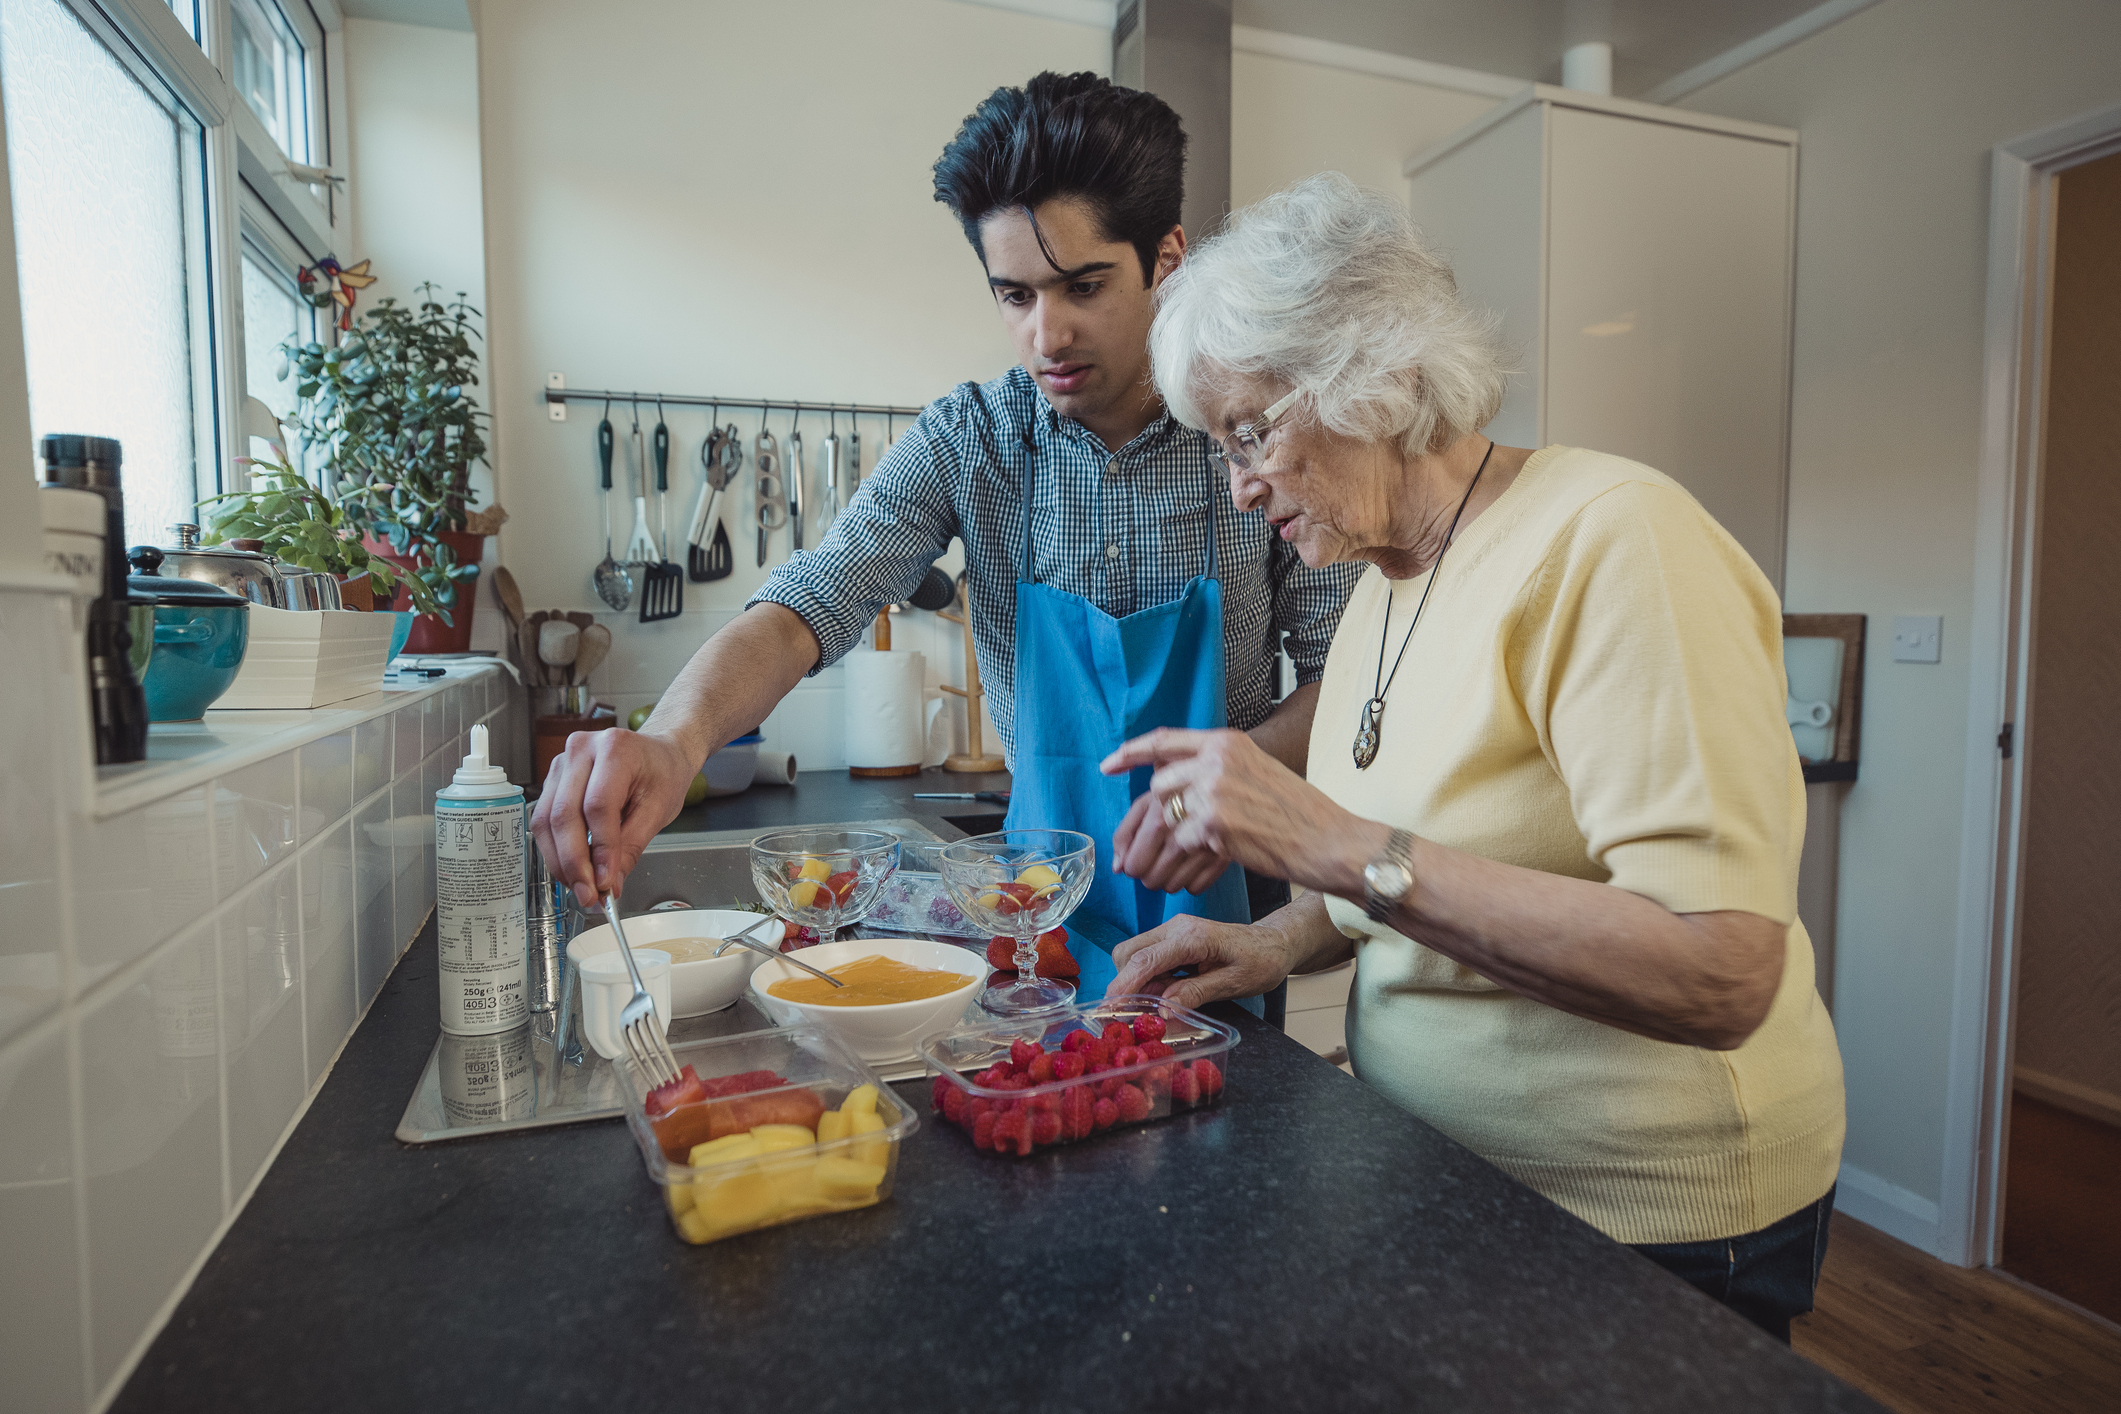 Young man preparing healthy meal with older adult.